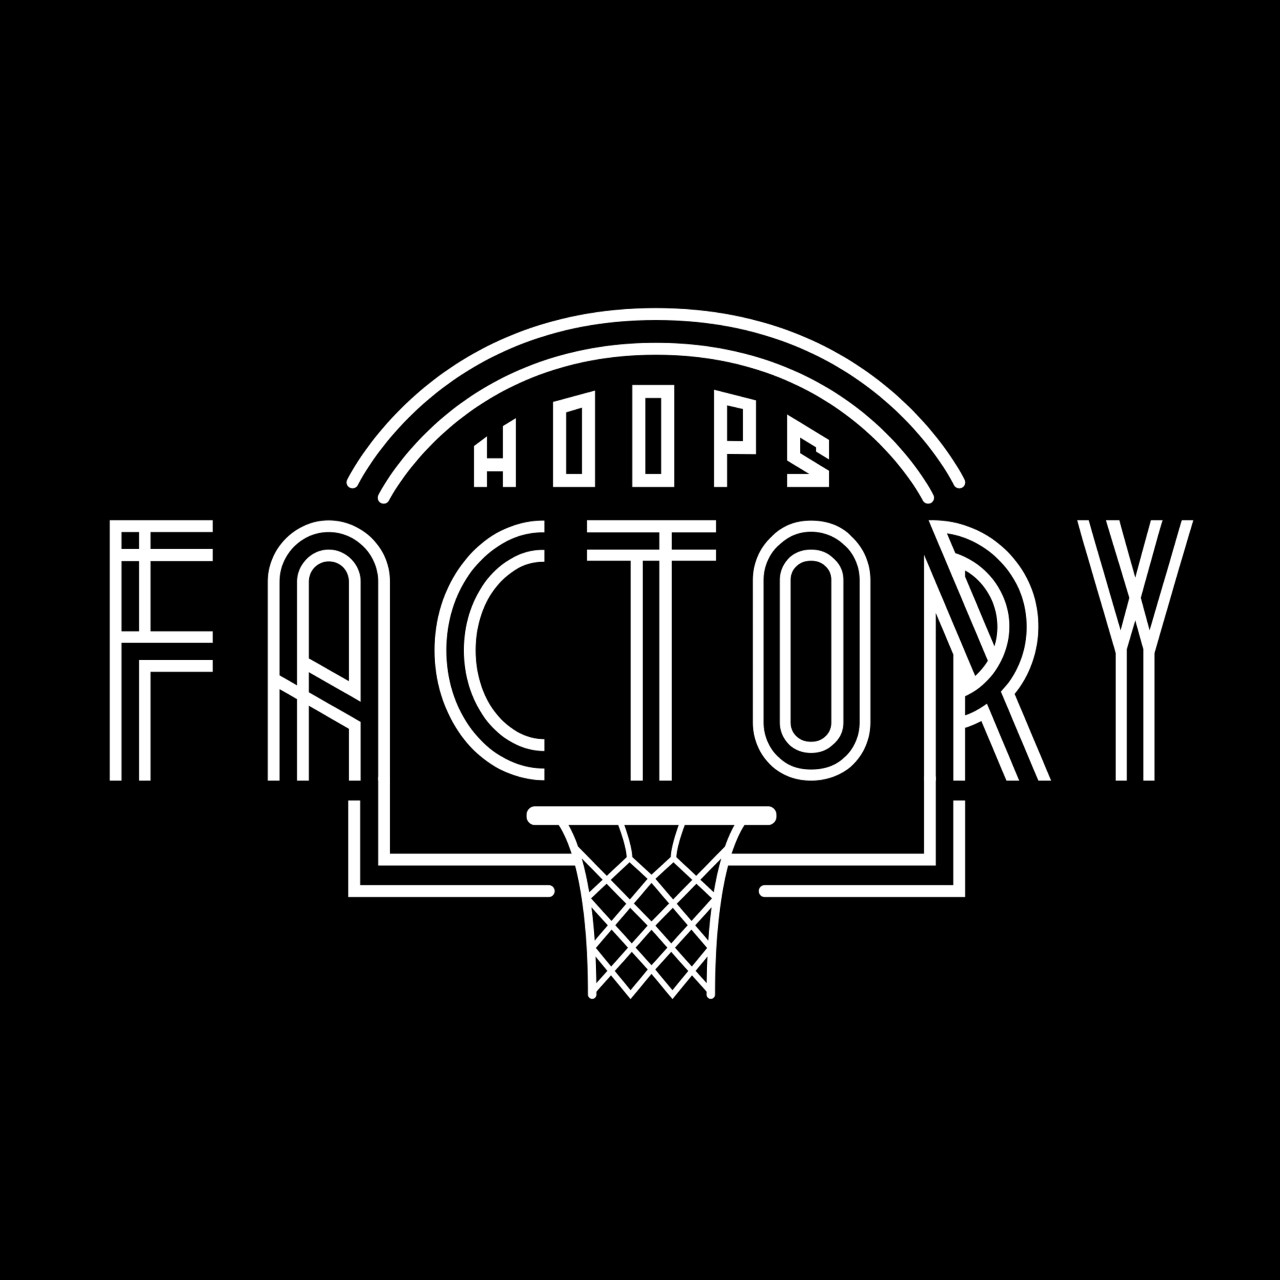 LOGO_Hoops Factory